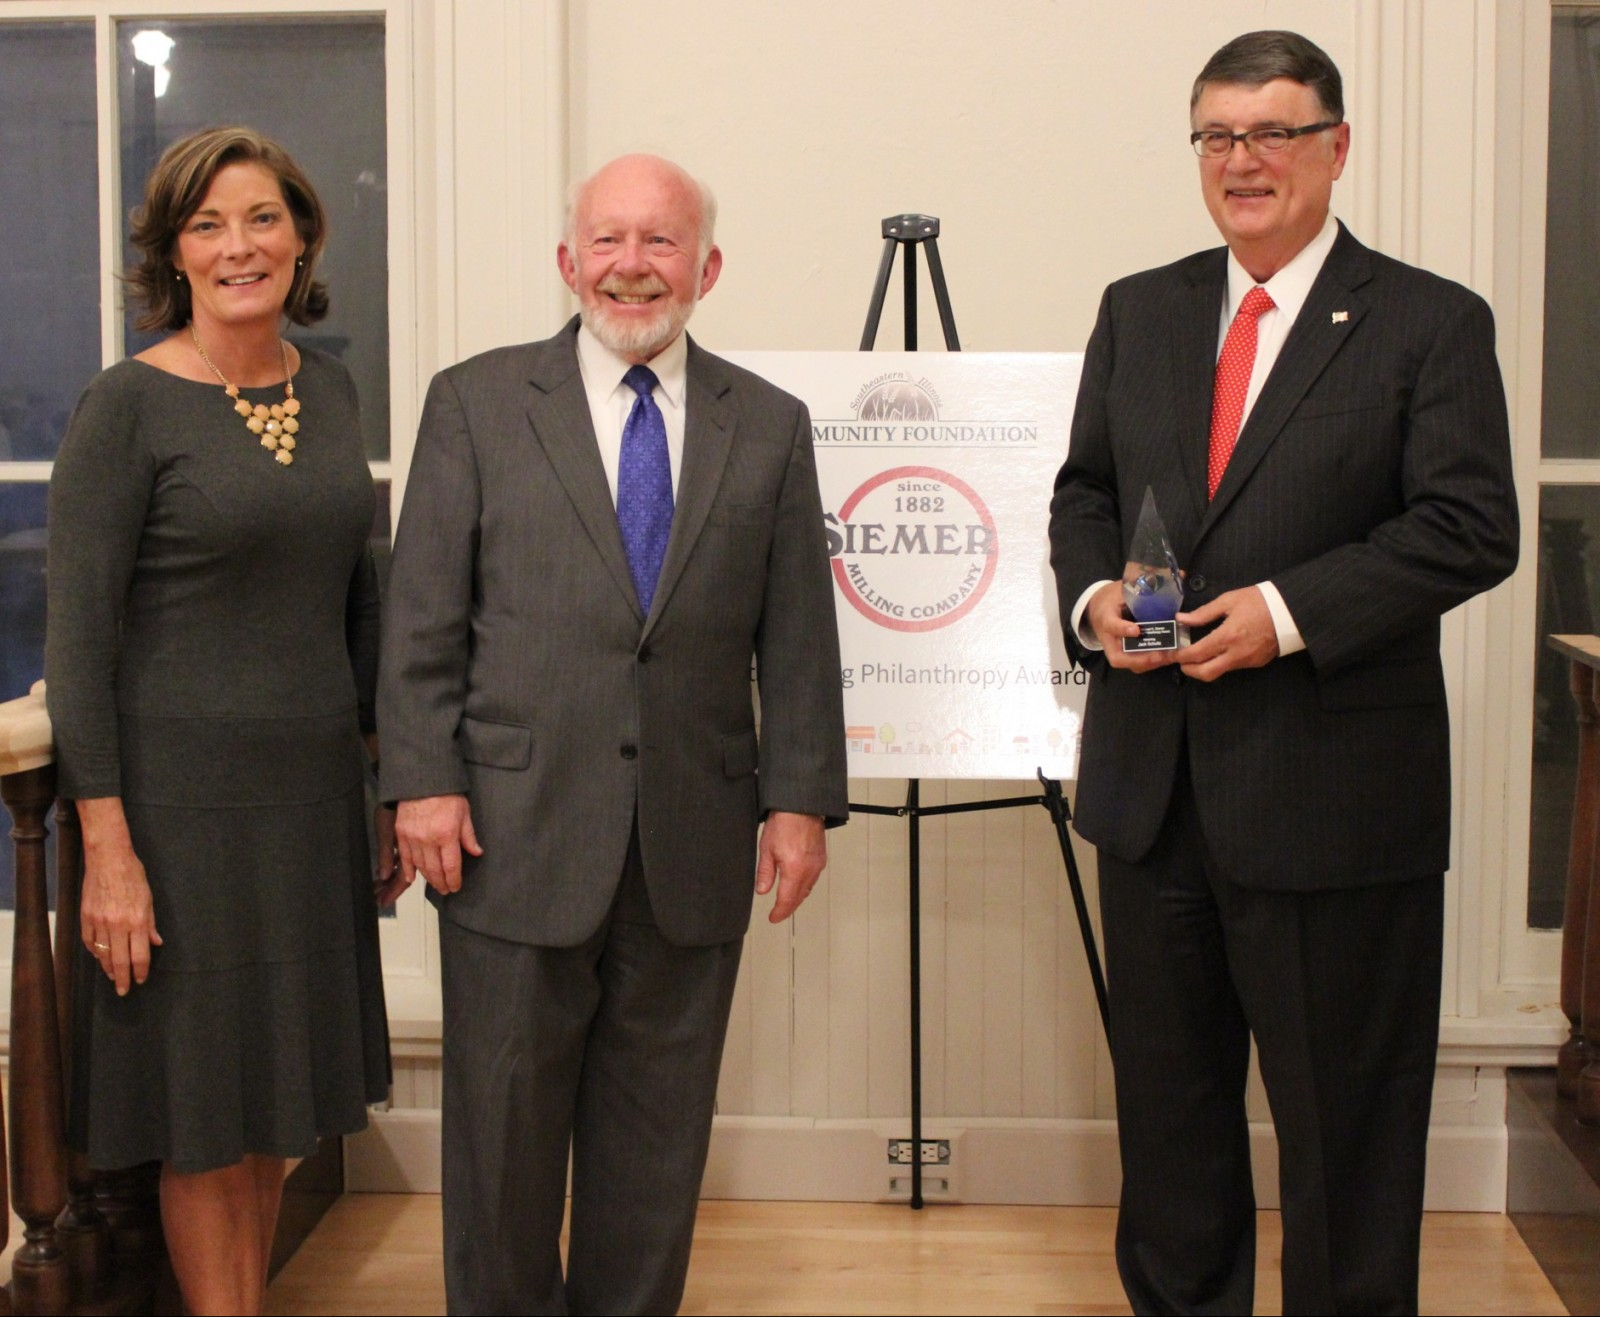 Pictured L-R Community Foundation President/CEO Joedy Hightower, Rick President/CEO of SIemer Milling, and former award recipient Rick Siemer, and Outstanding Philanthropist Award recipient Jack Schultz.